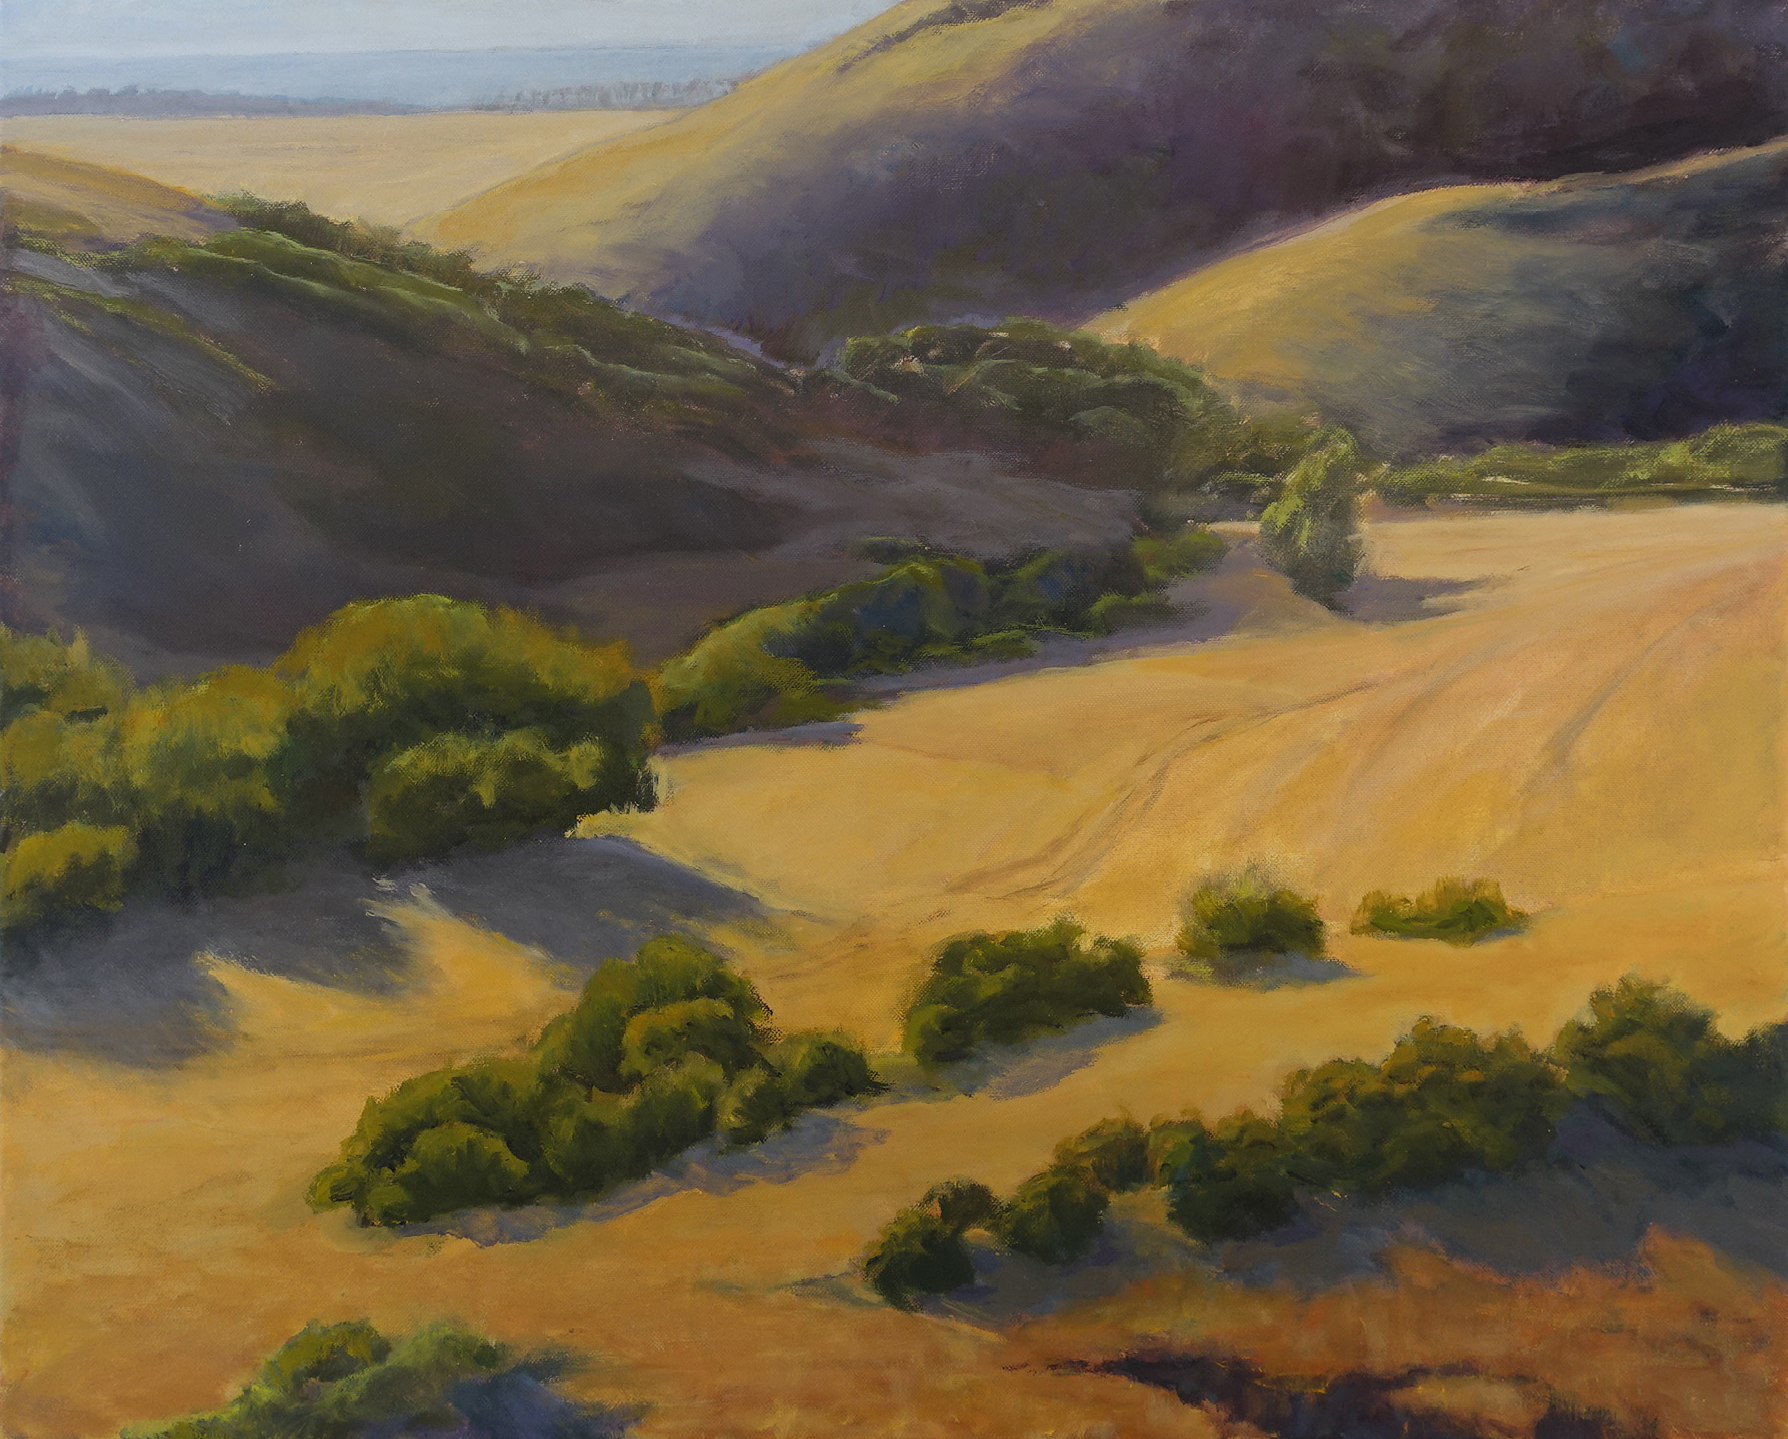 Coastal Range Big Sur, 24 x 30 inches